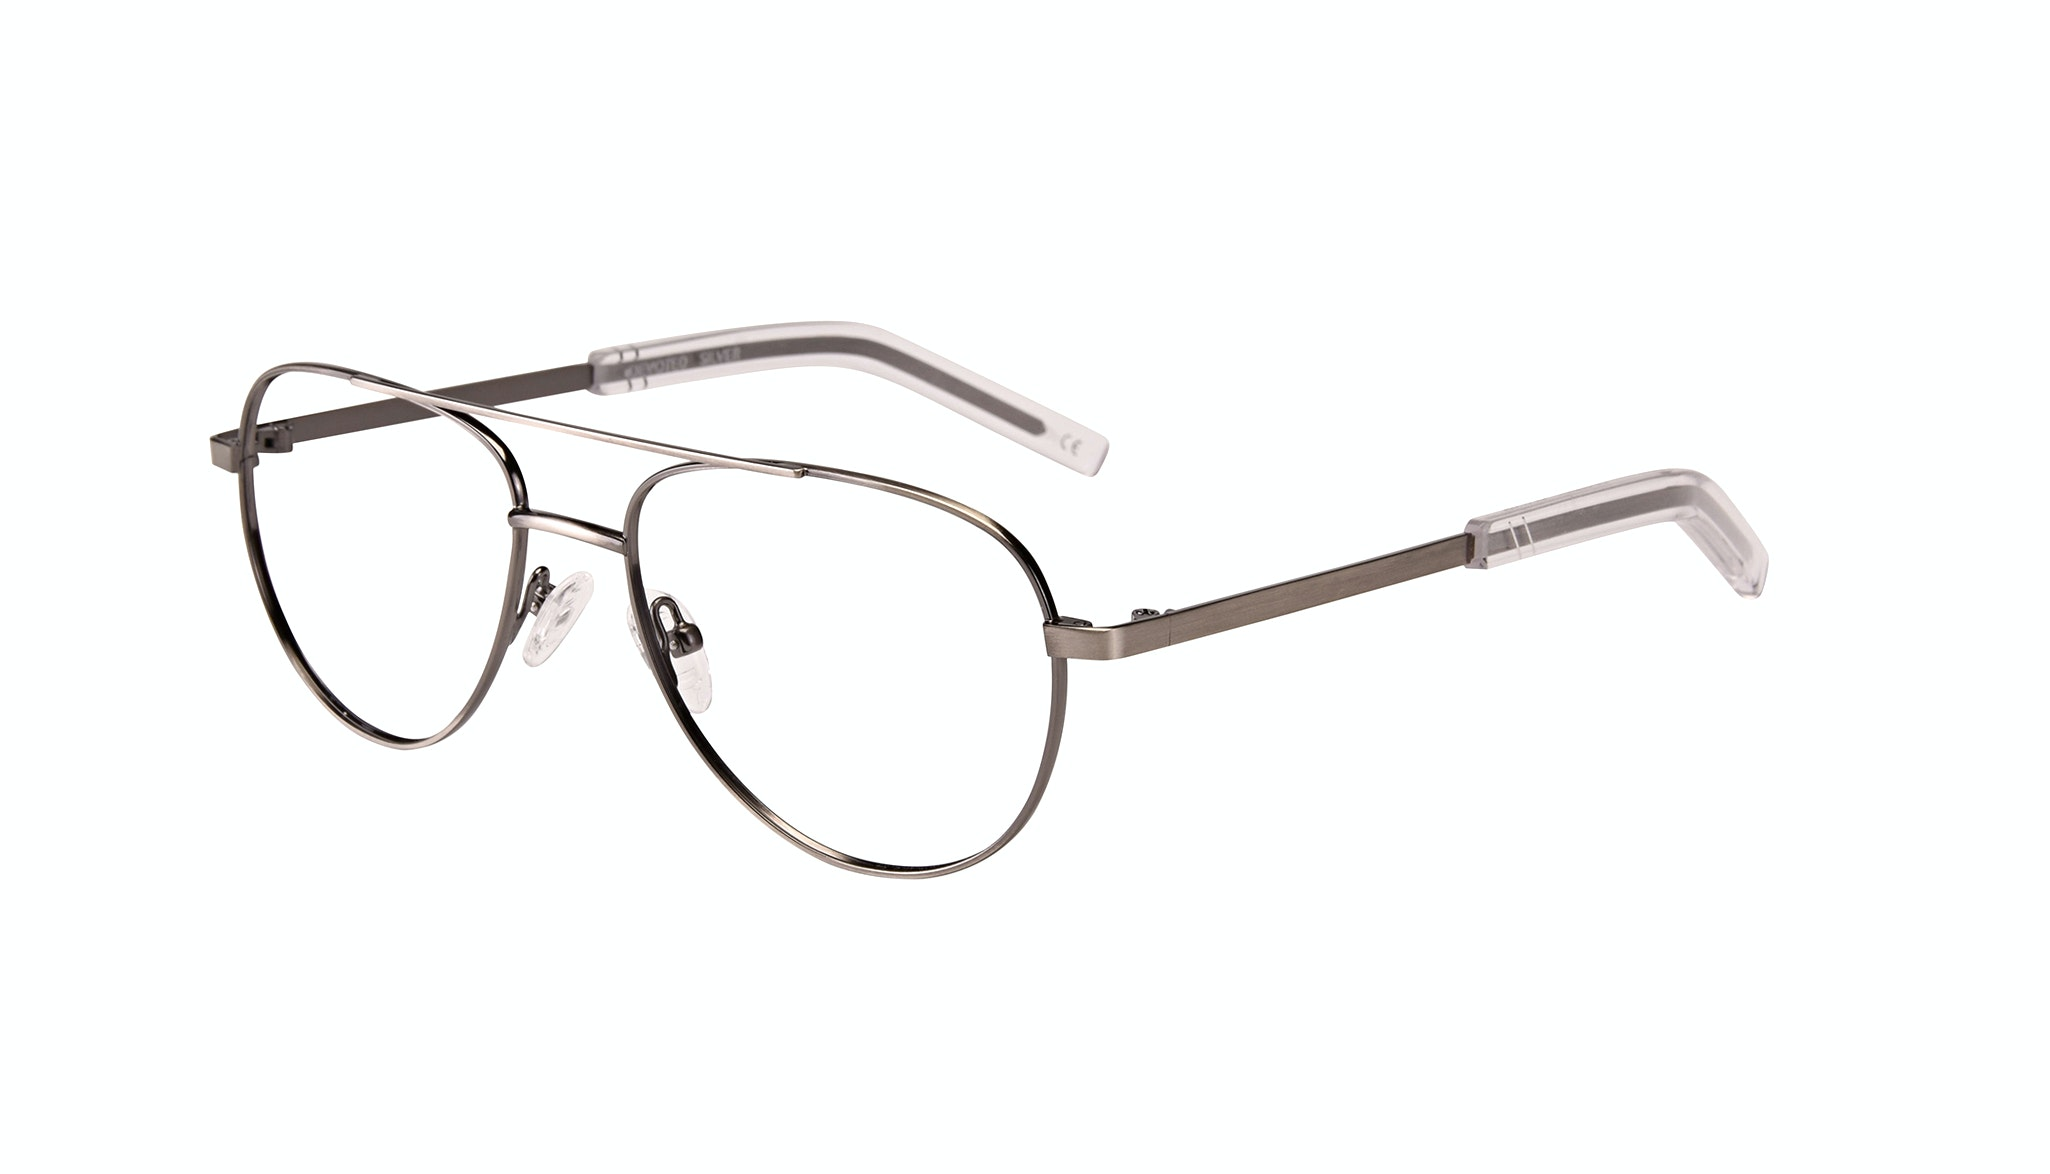 Affordable Fashion Glasses Aviator Eyeglasses Men Devoted Silver Tilt